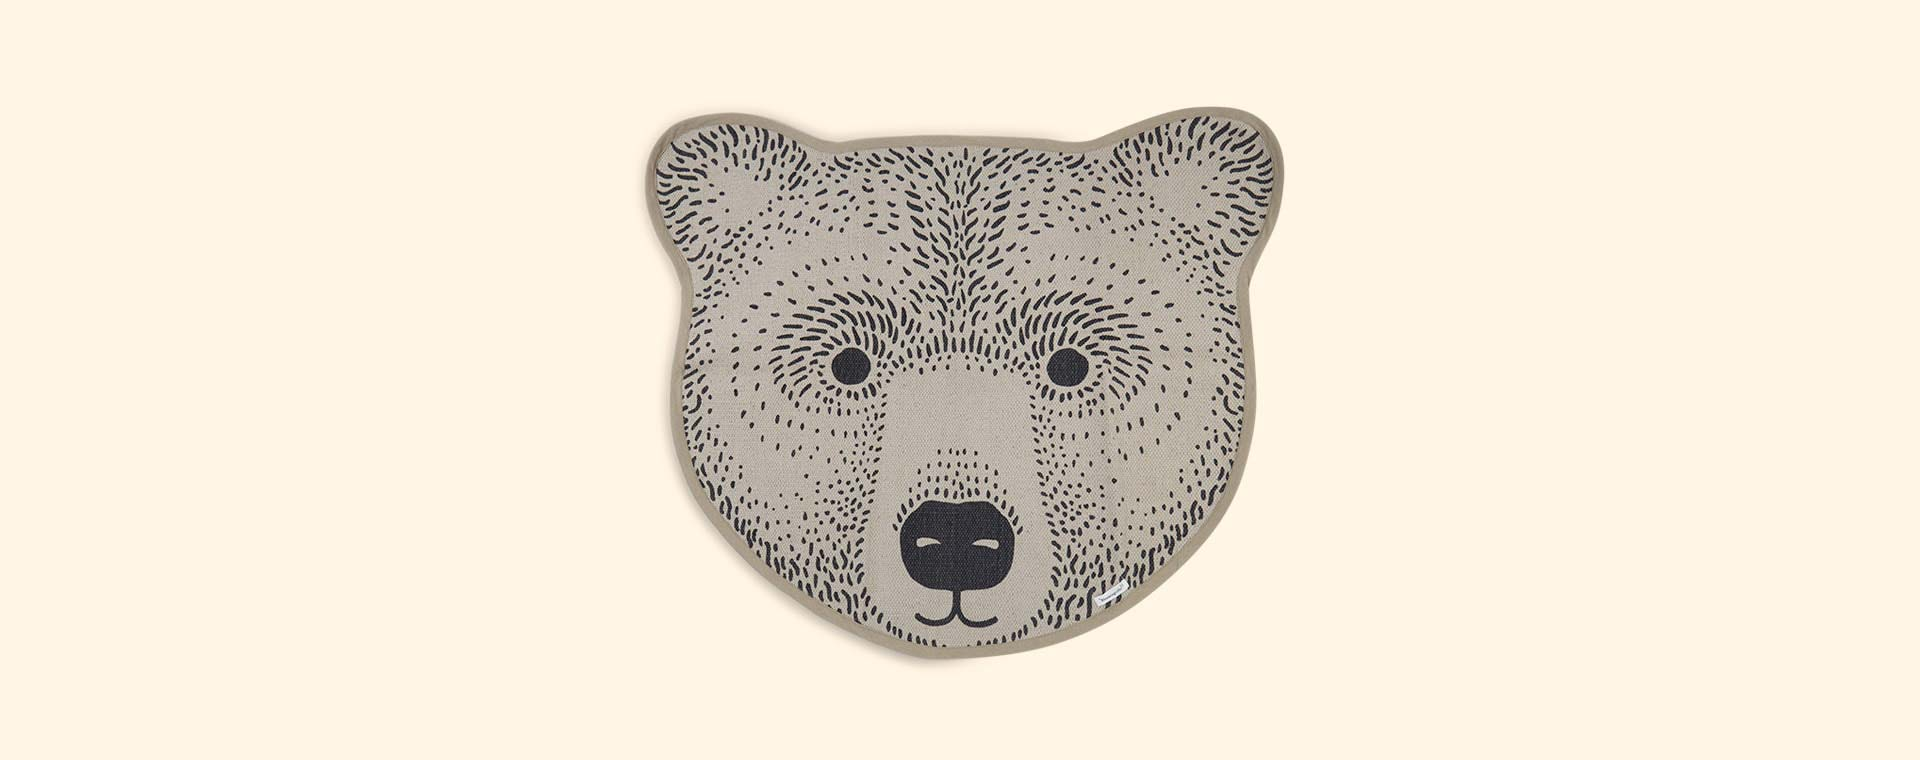 for rugs sell full rug picture htm click size bear the